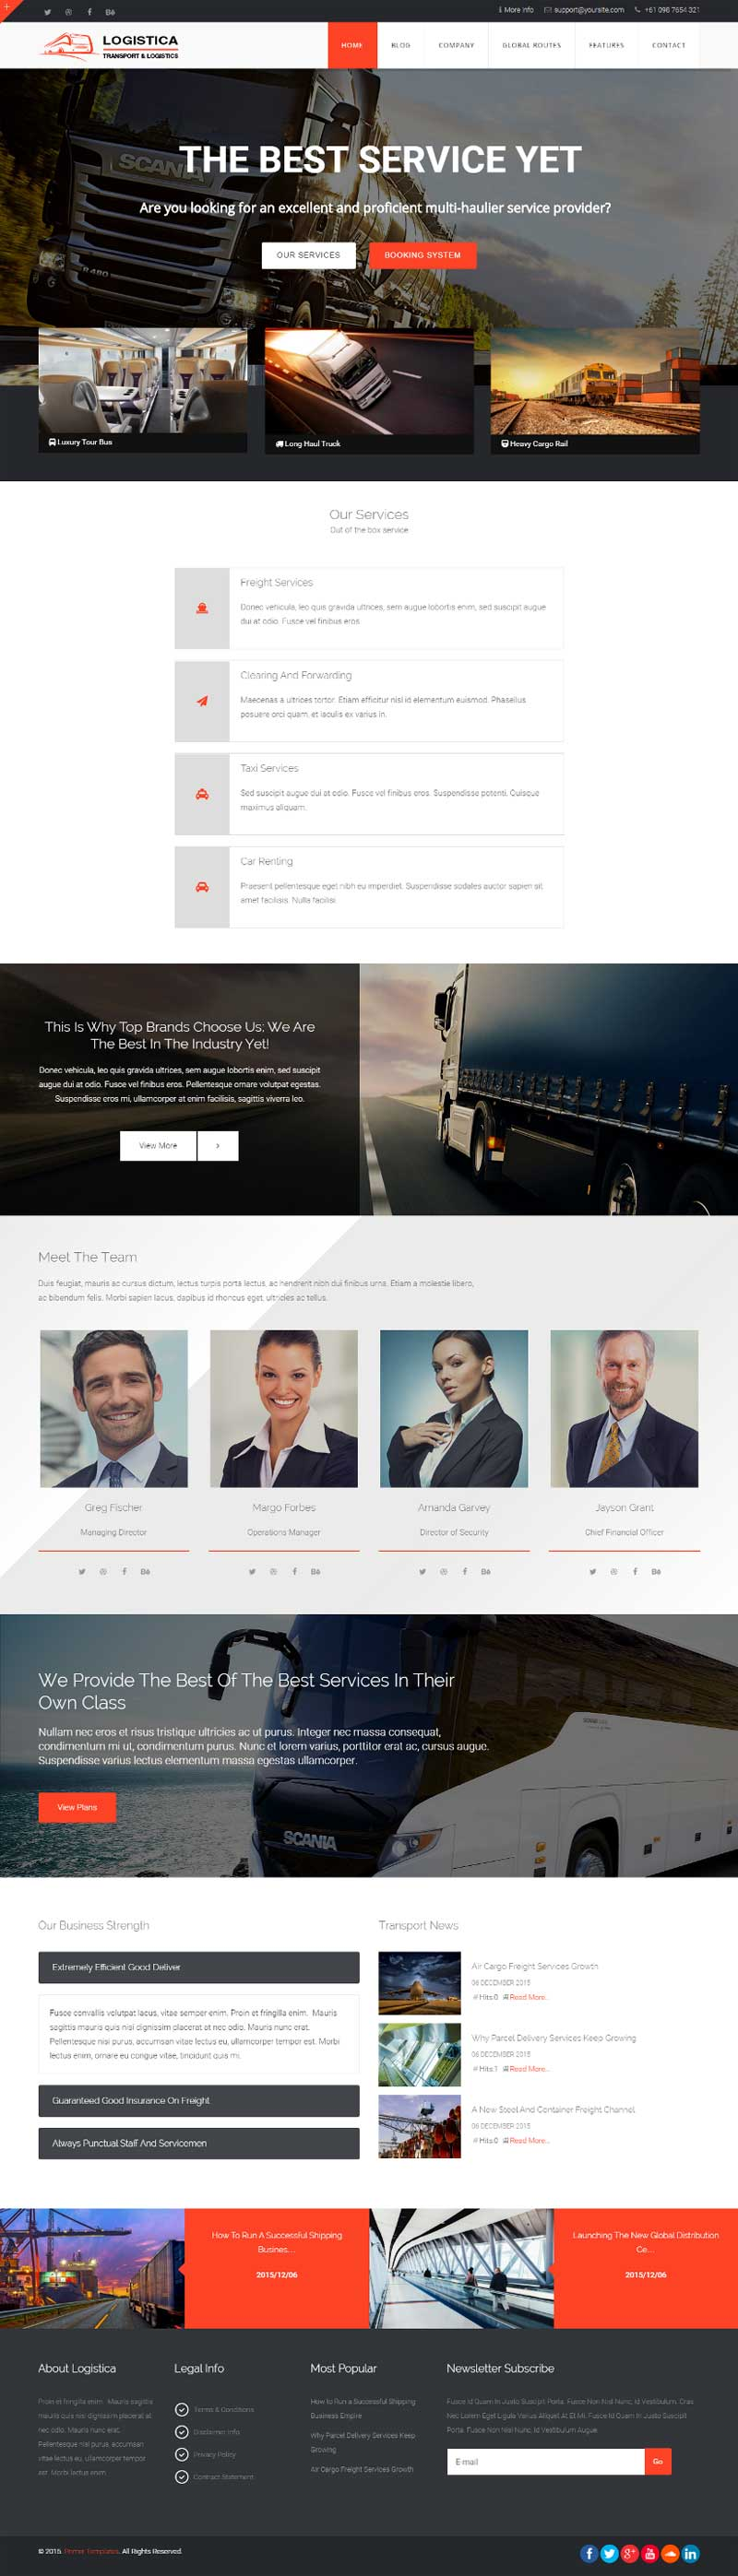 Logistics Joomla! template